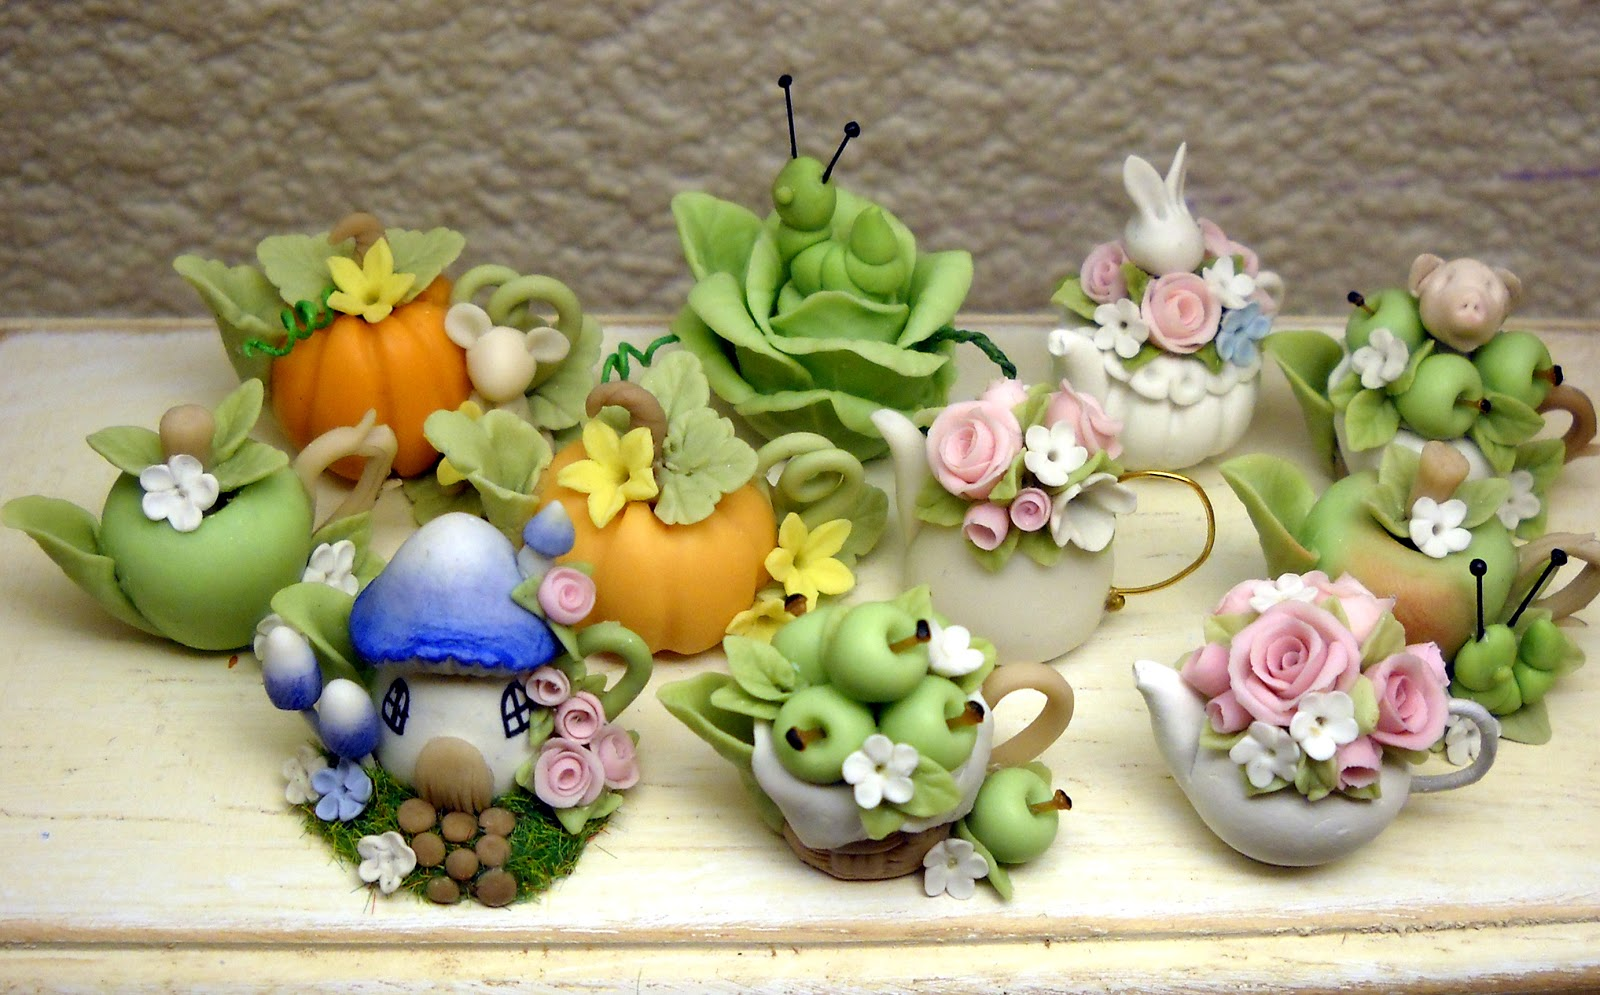 CDHM Gallery of Loredana Tonetti of Lory's Tiny Creations making all things whimsical in 1:12 scale from bunny teapots, shabby chic food accessories, tiny bird houses, dancing frogs on lilypad teapots and 1:12 foods including rustic fruits and vegetables